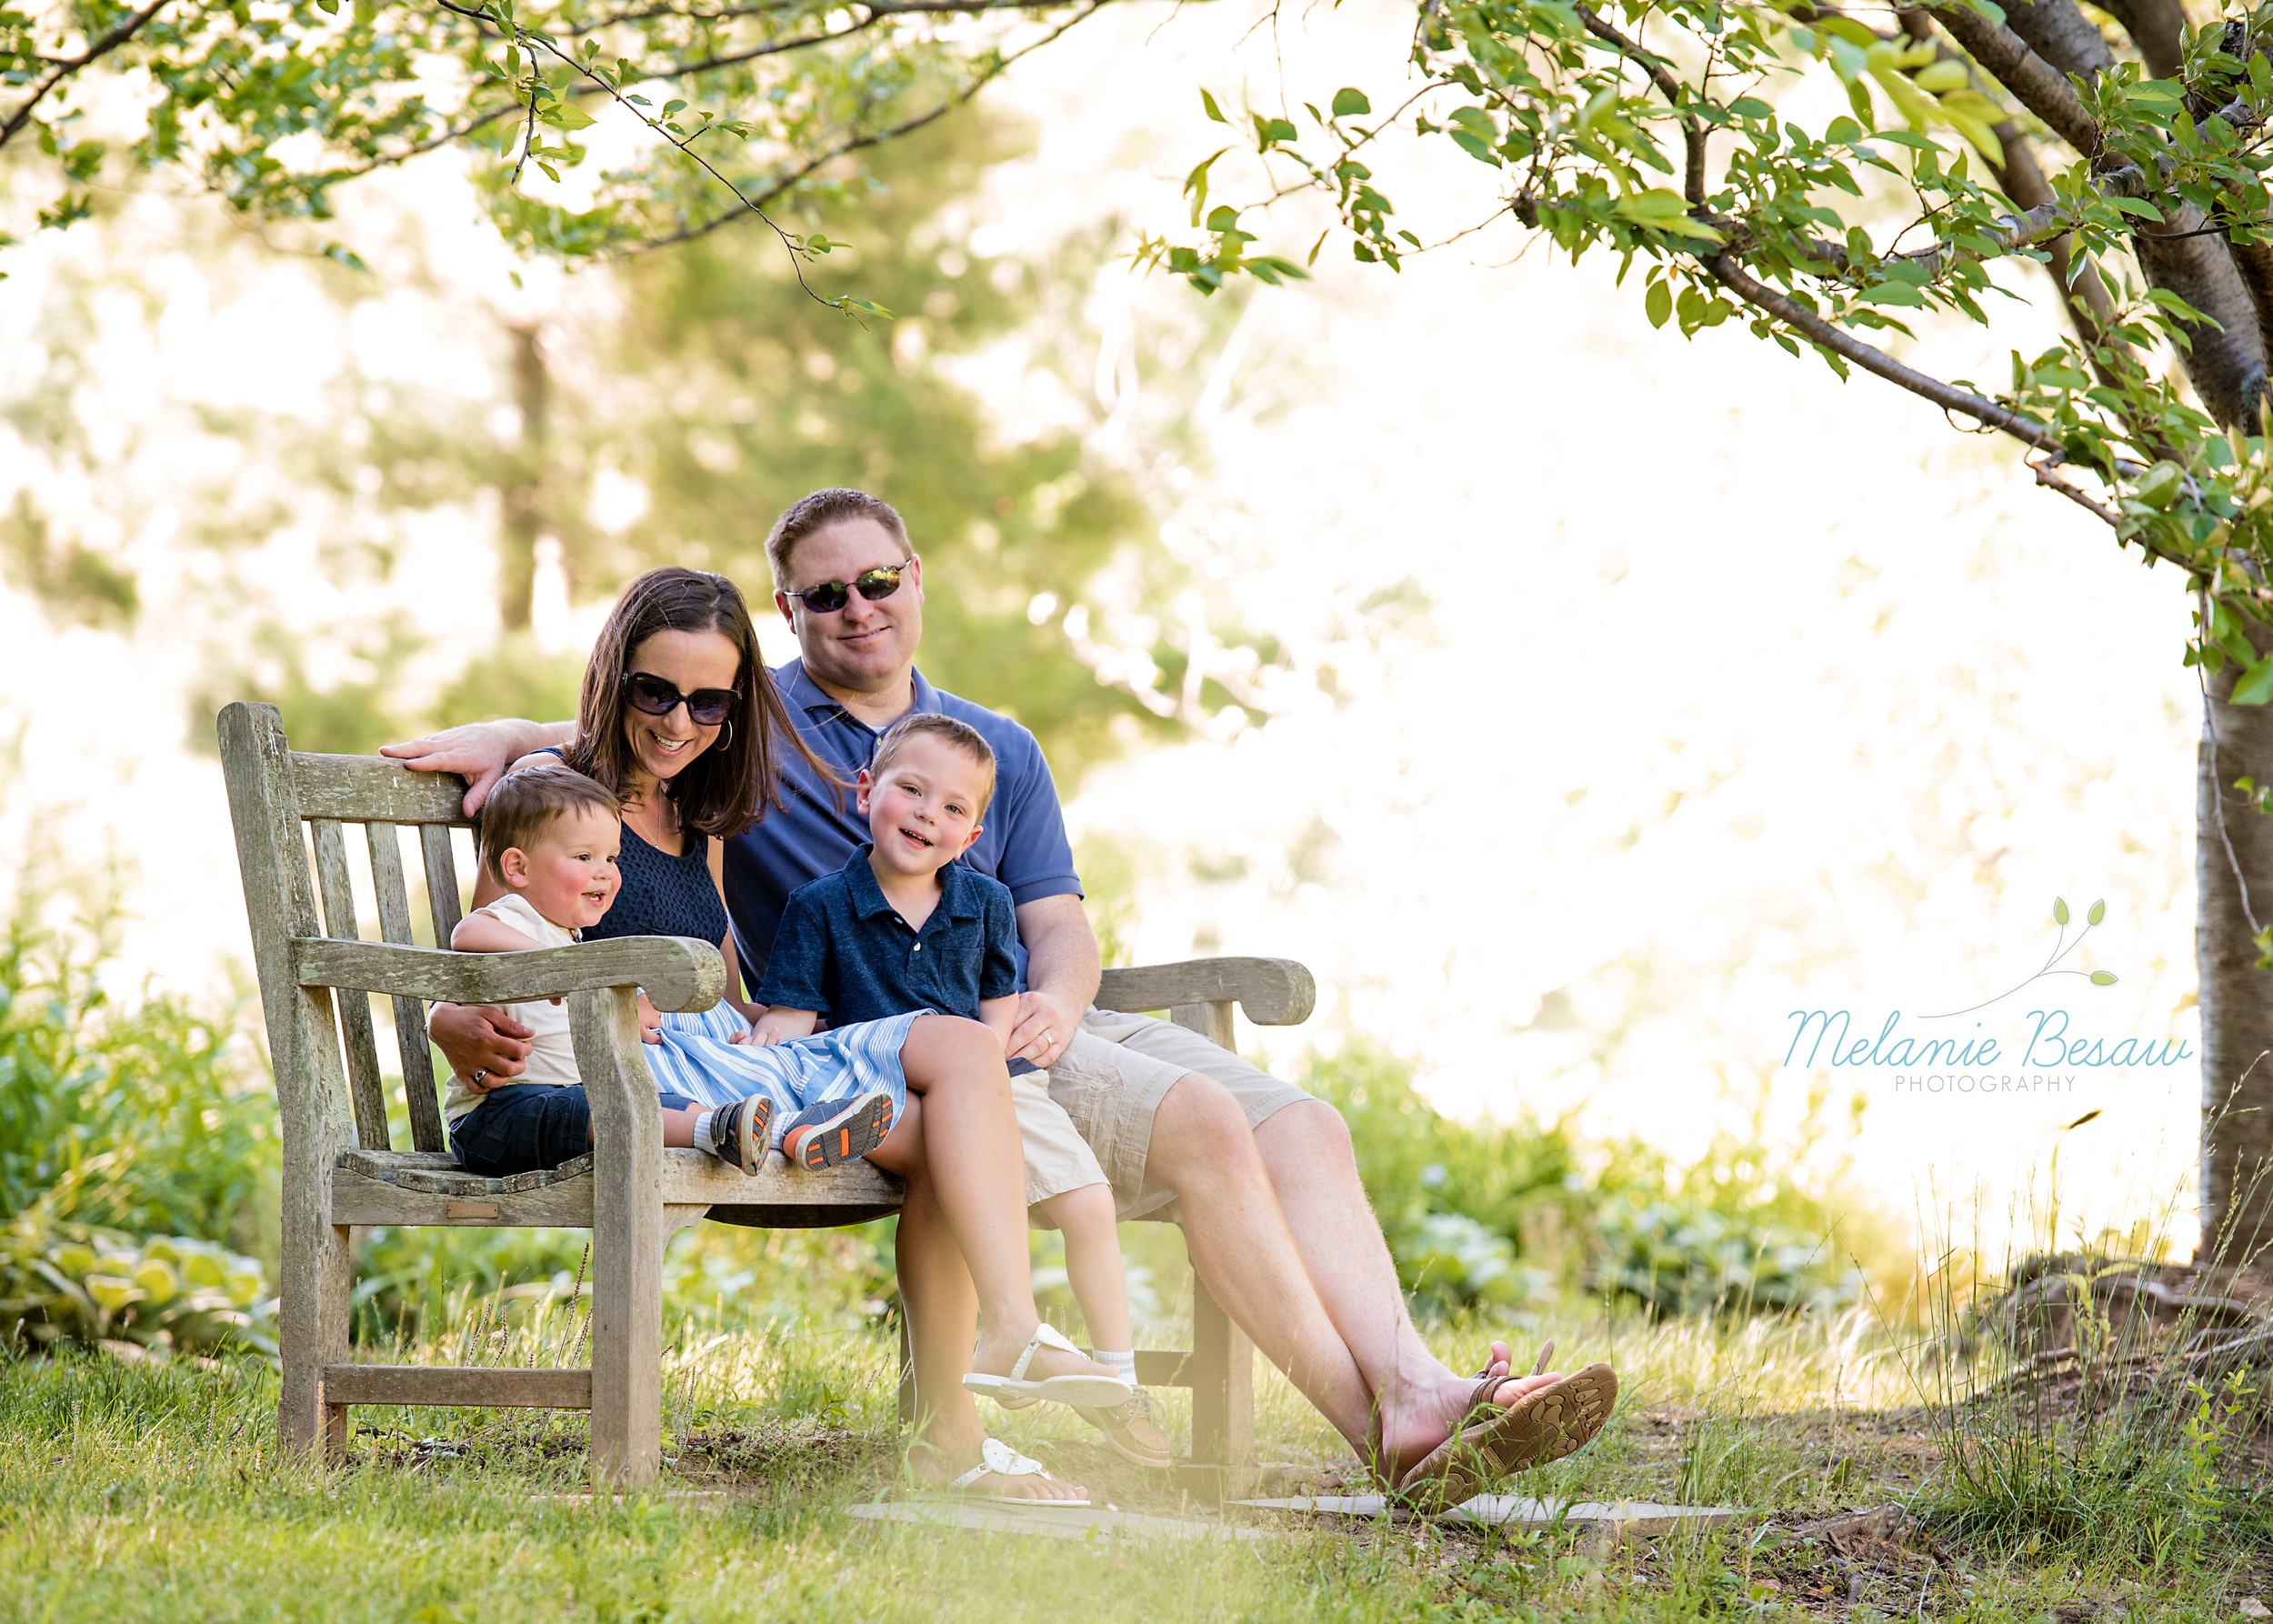 Melanie Besaw is a natural light photographer based in Northern Virginia, specializing in meaningful family, newborn, child and maternity portrait and lifestyle photography.  Serving the metro DC area, including Arlington, Alexandria, Fairfax, Prince William and Loudoun counties.